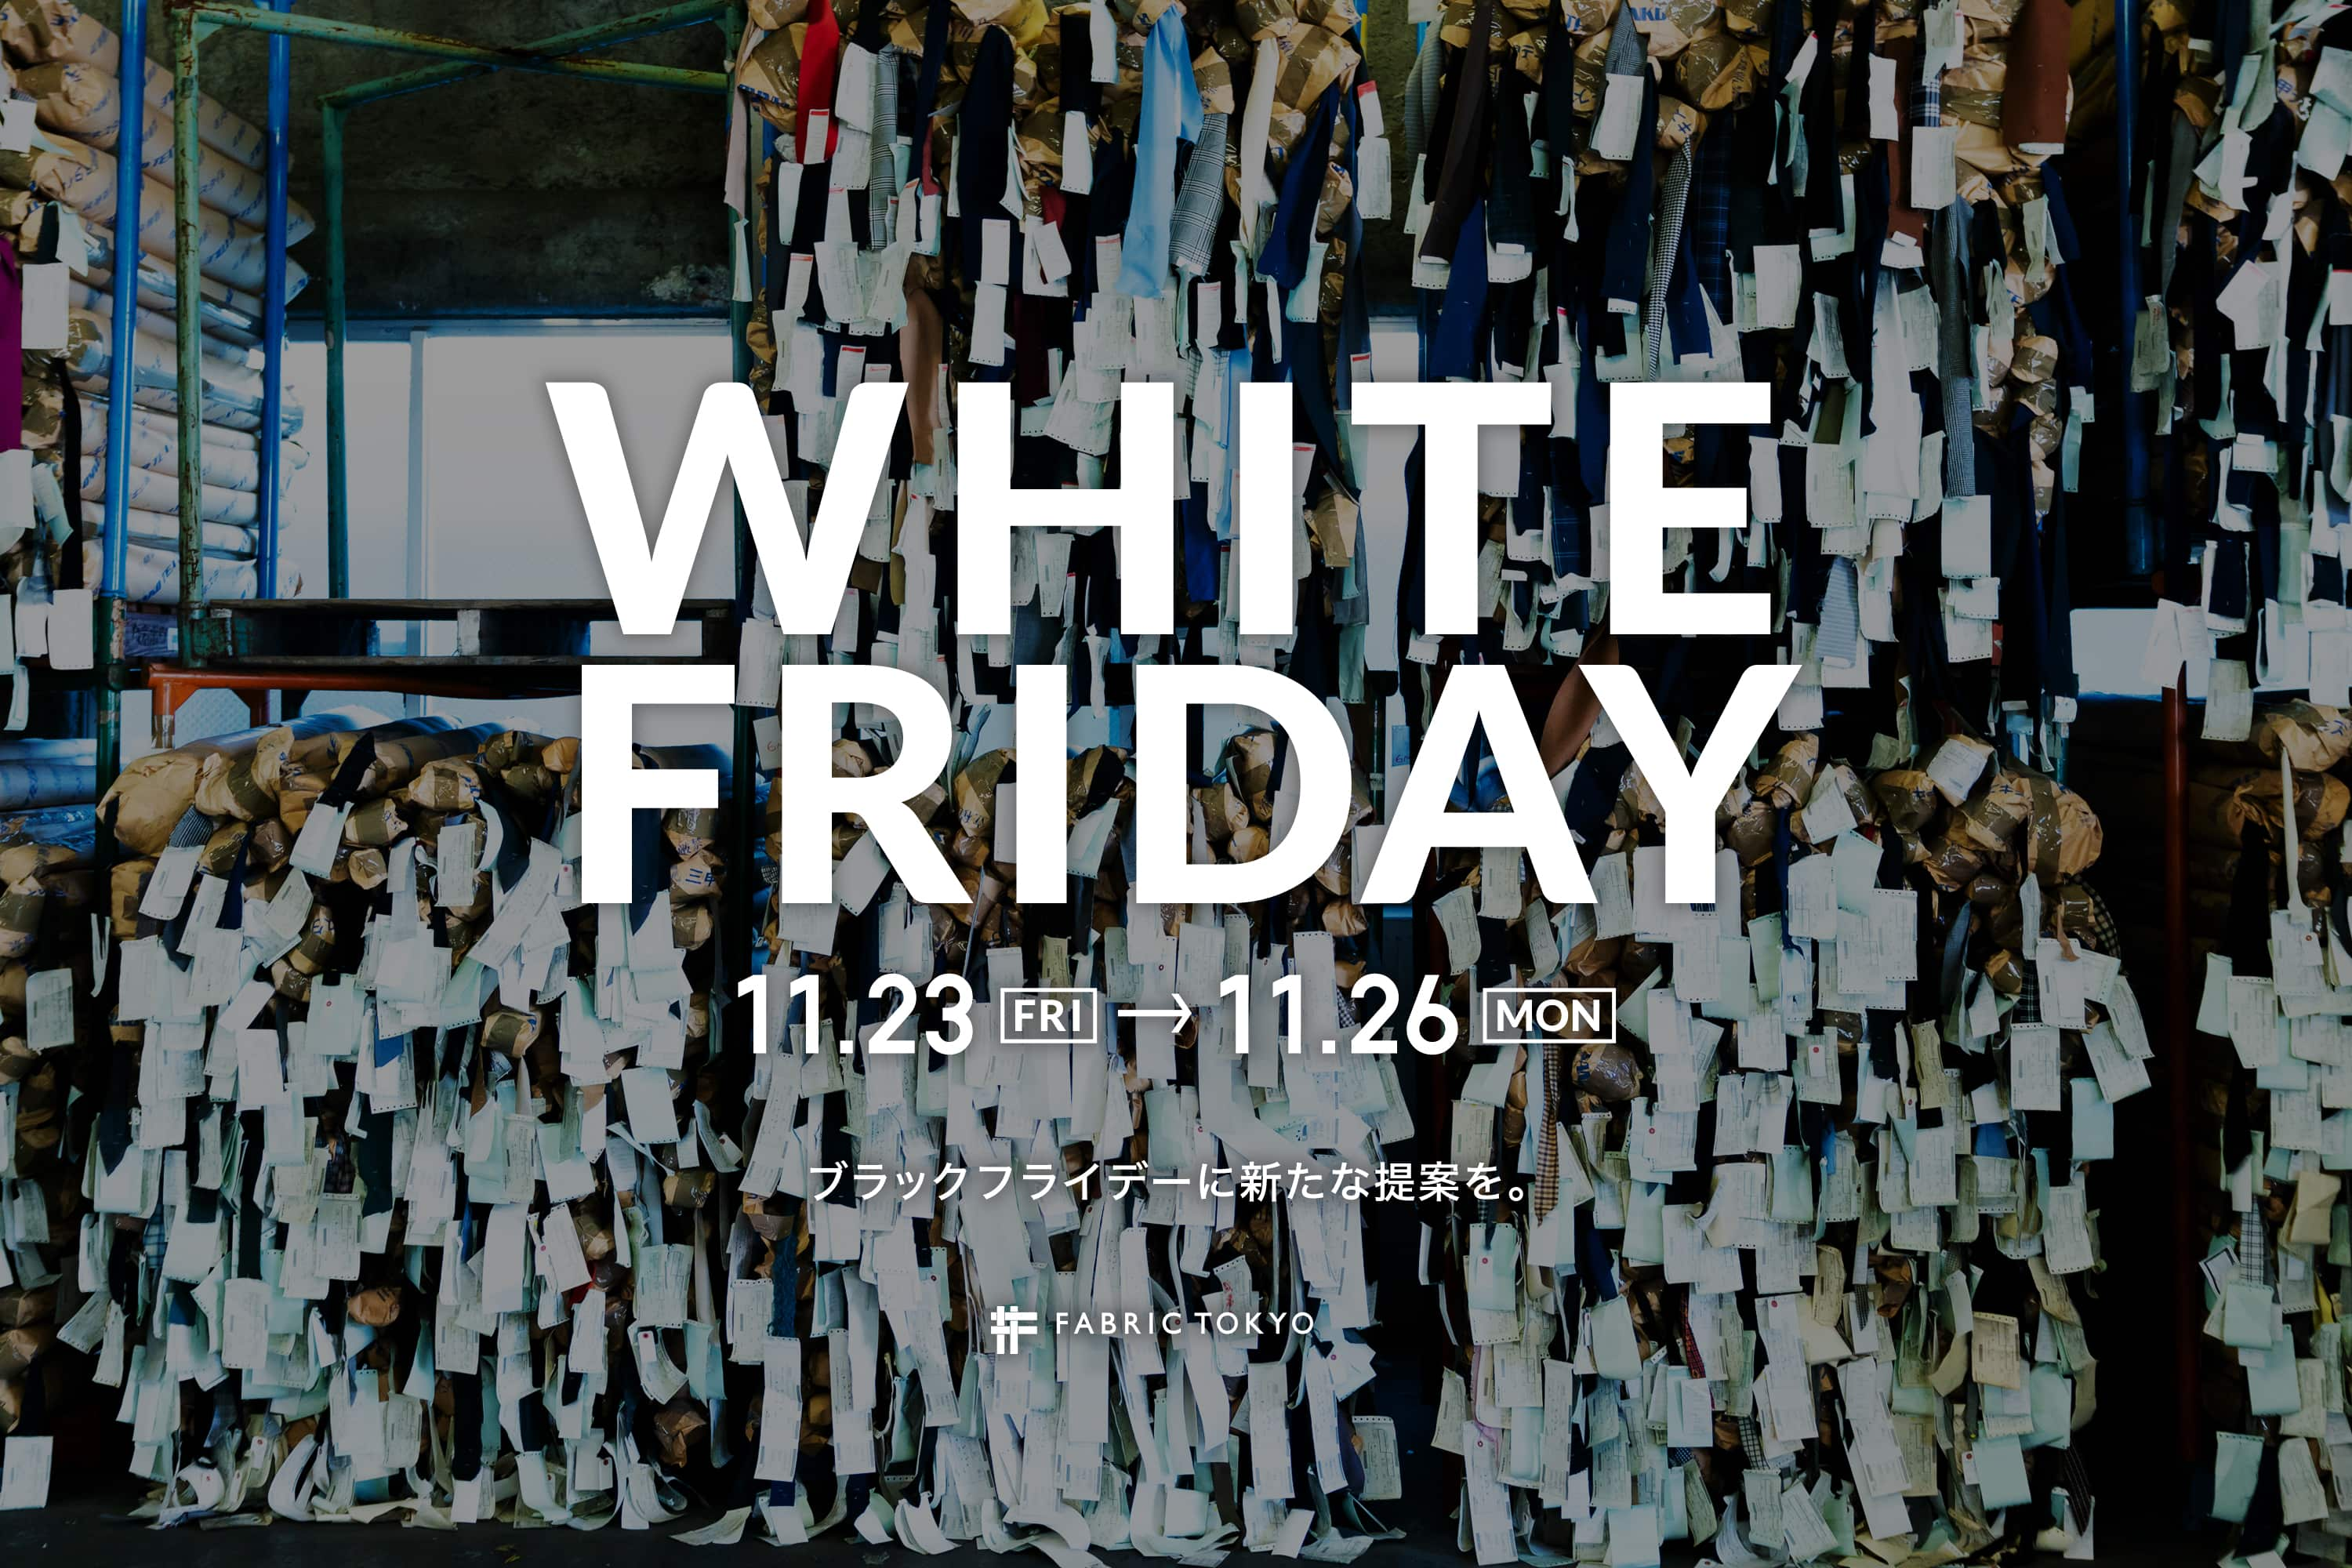 whitefriday